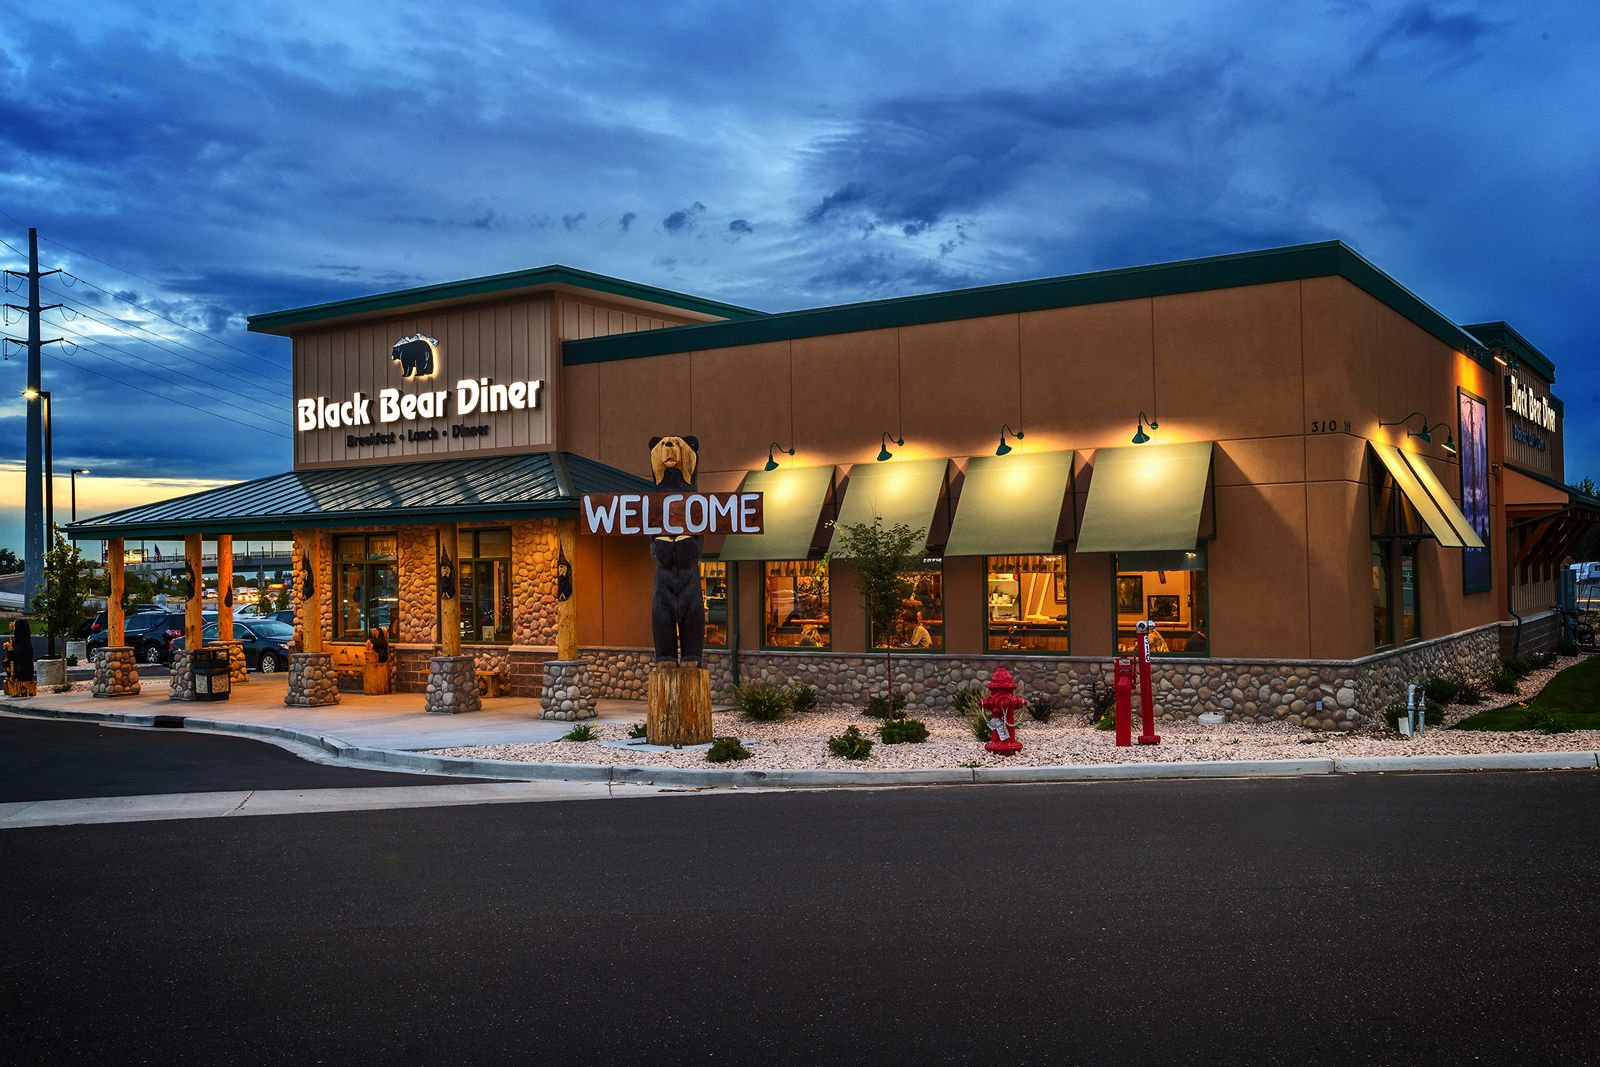 Black Bear Diner Named Official Family Diner for High School Athletics in Six States